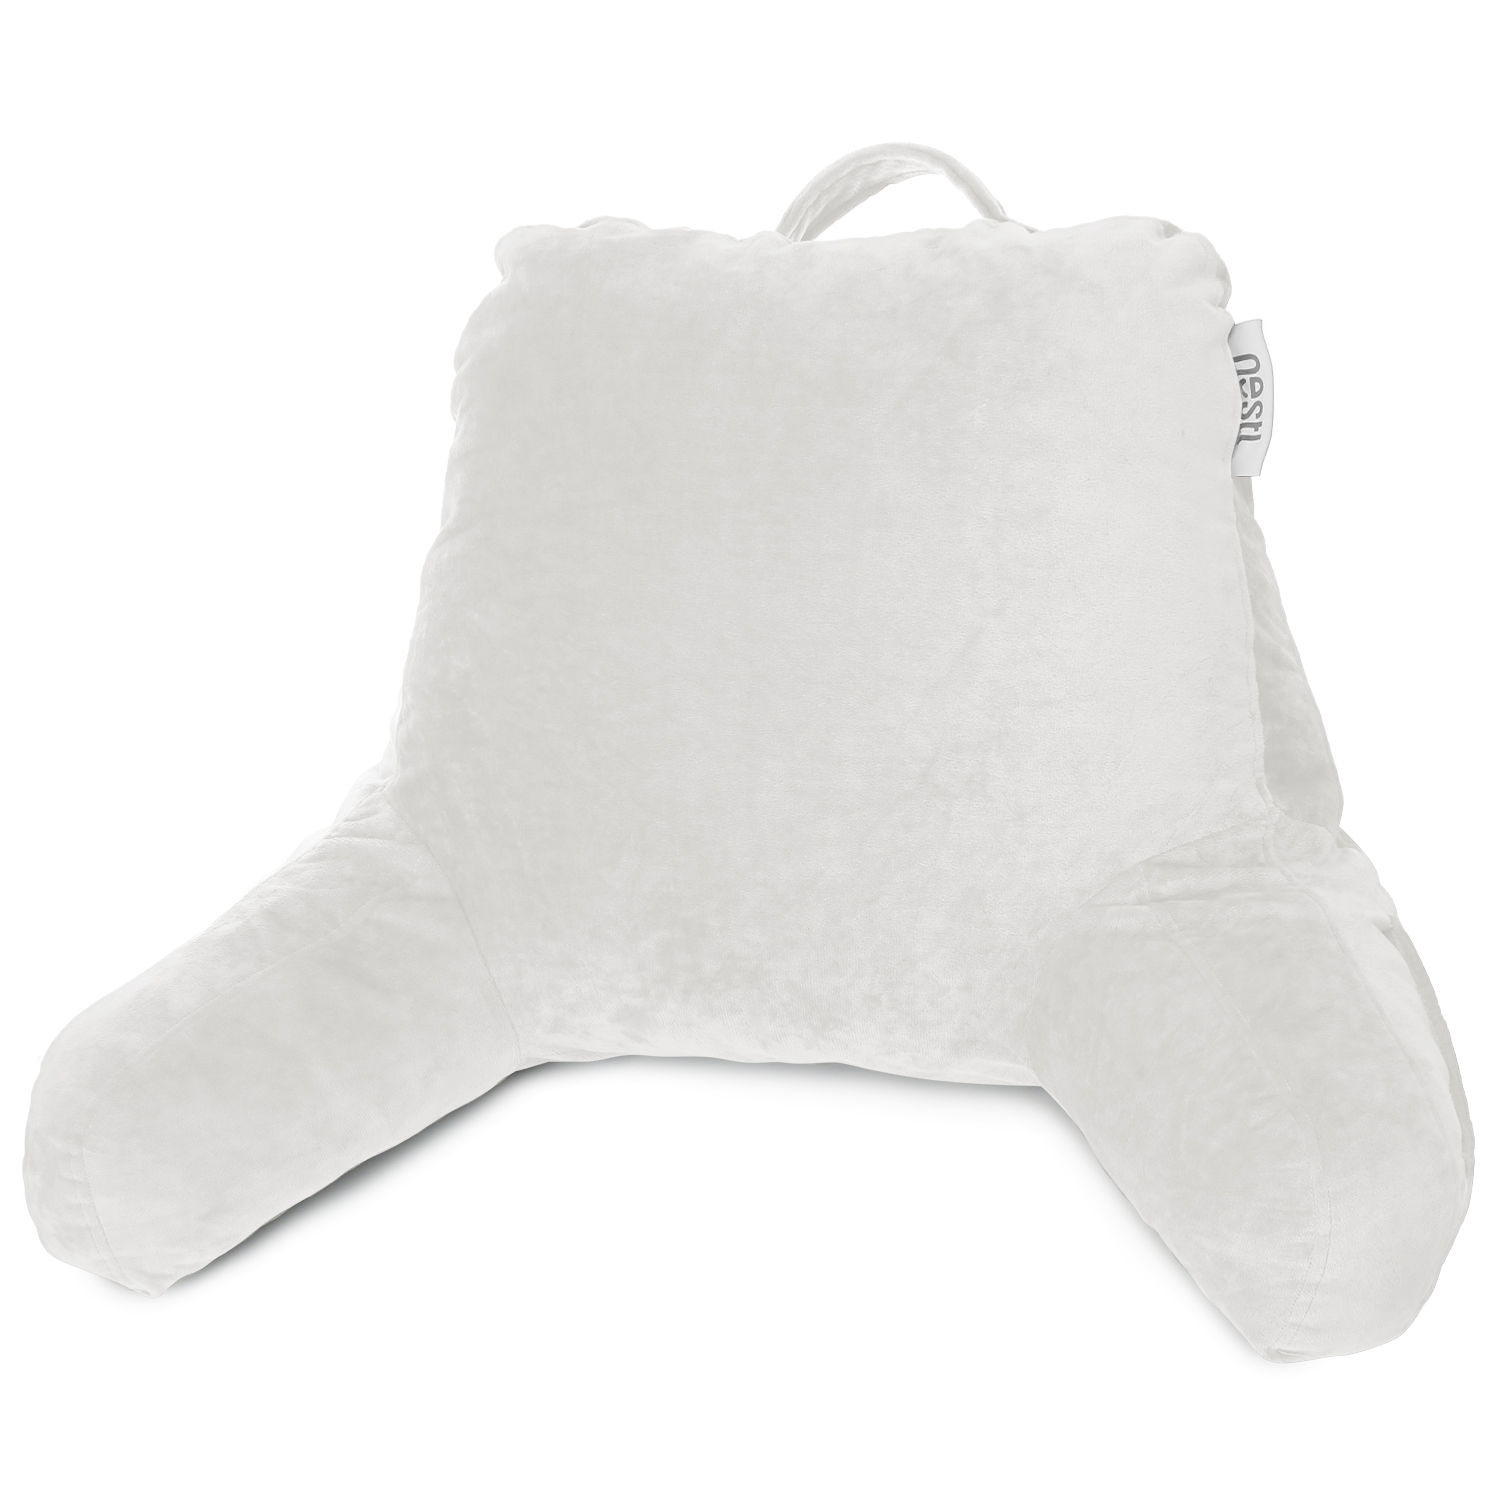 Picture of: Super Foam Reading Pillow Tv Bed Rest Pillow Arms Support With Pockets White 541146155709 Ebay